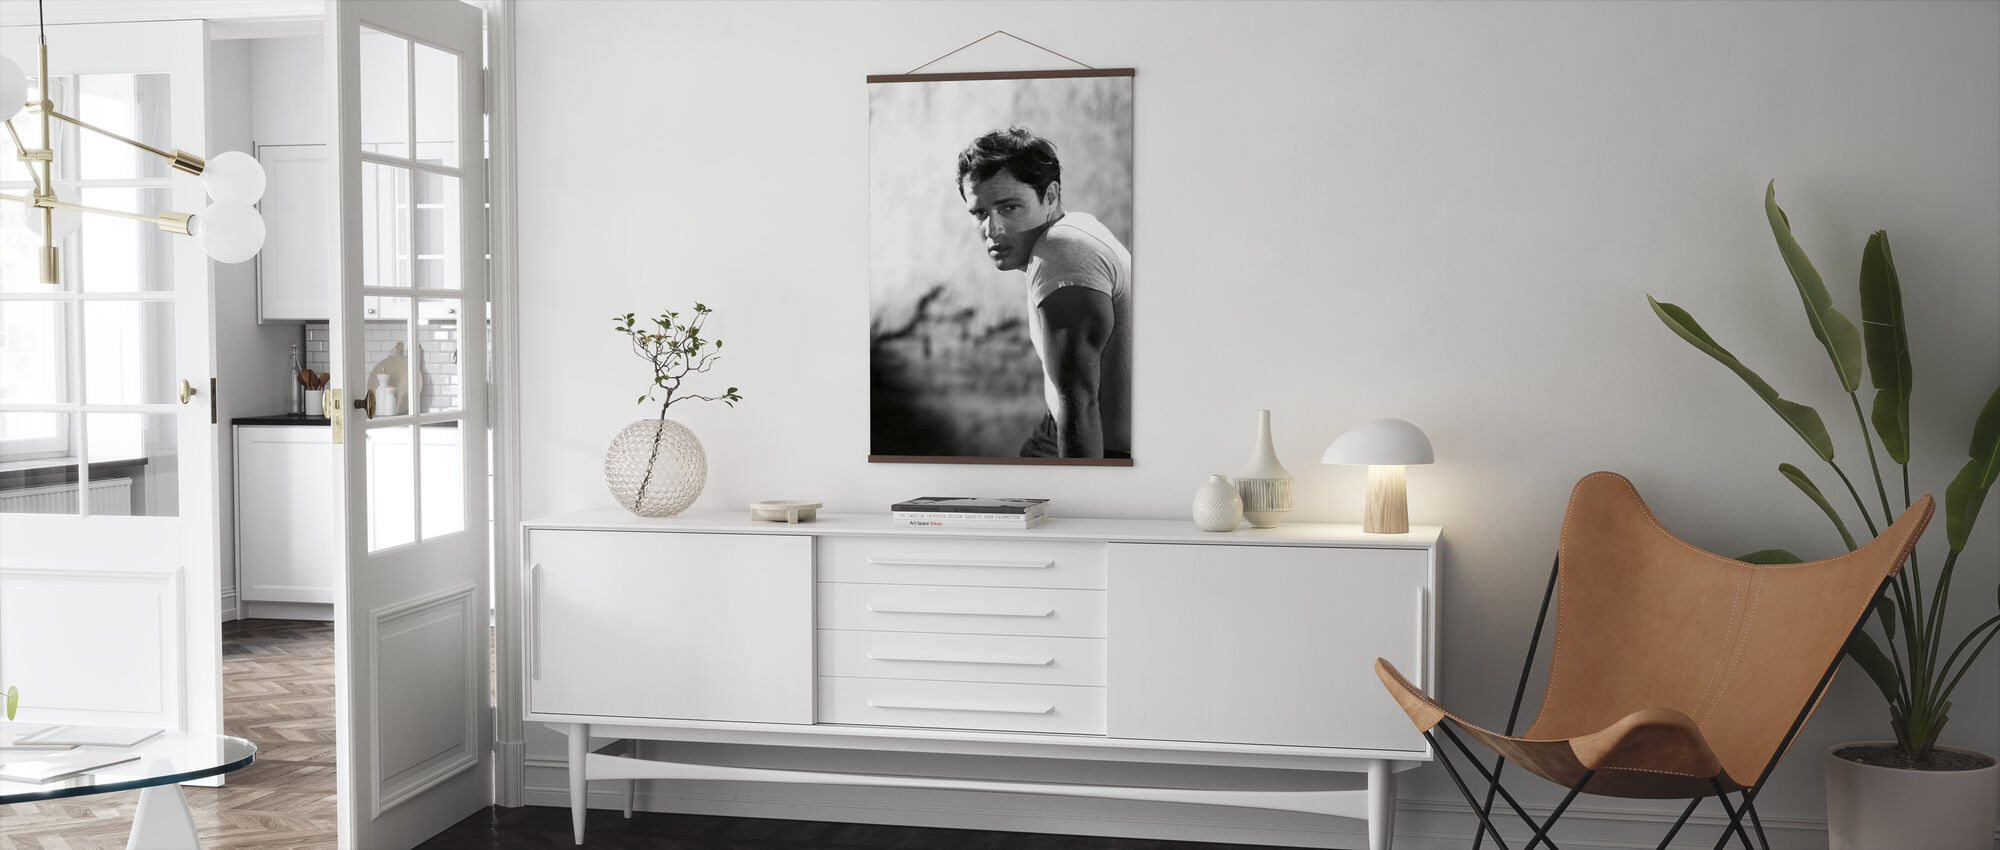 Marlon Brando in a Streetcar Named Desire - Poster - Living Room